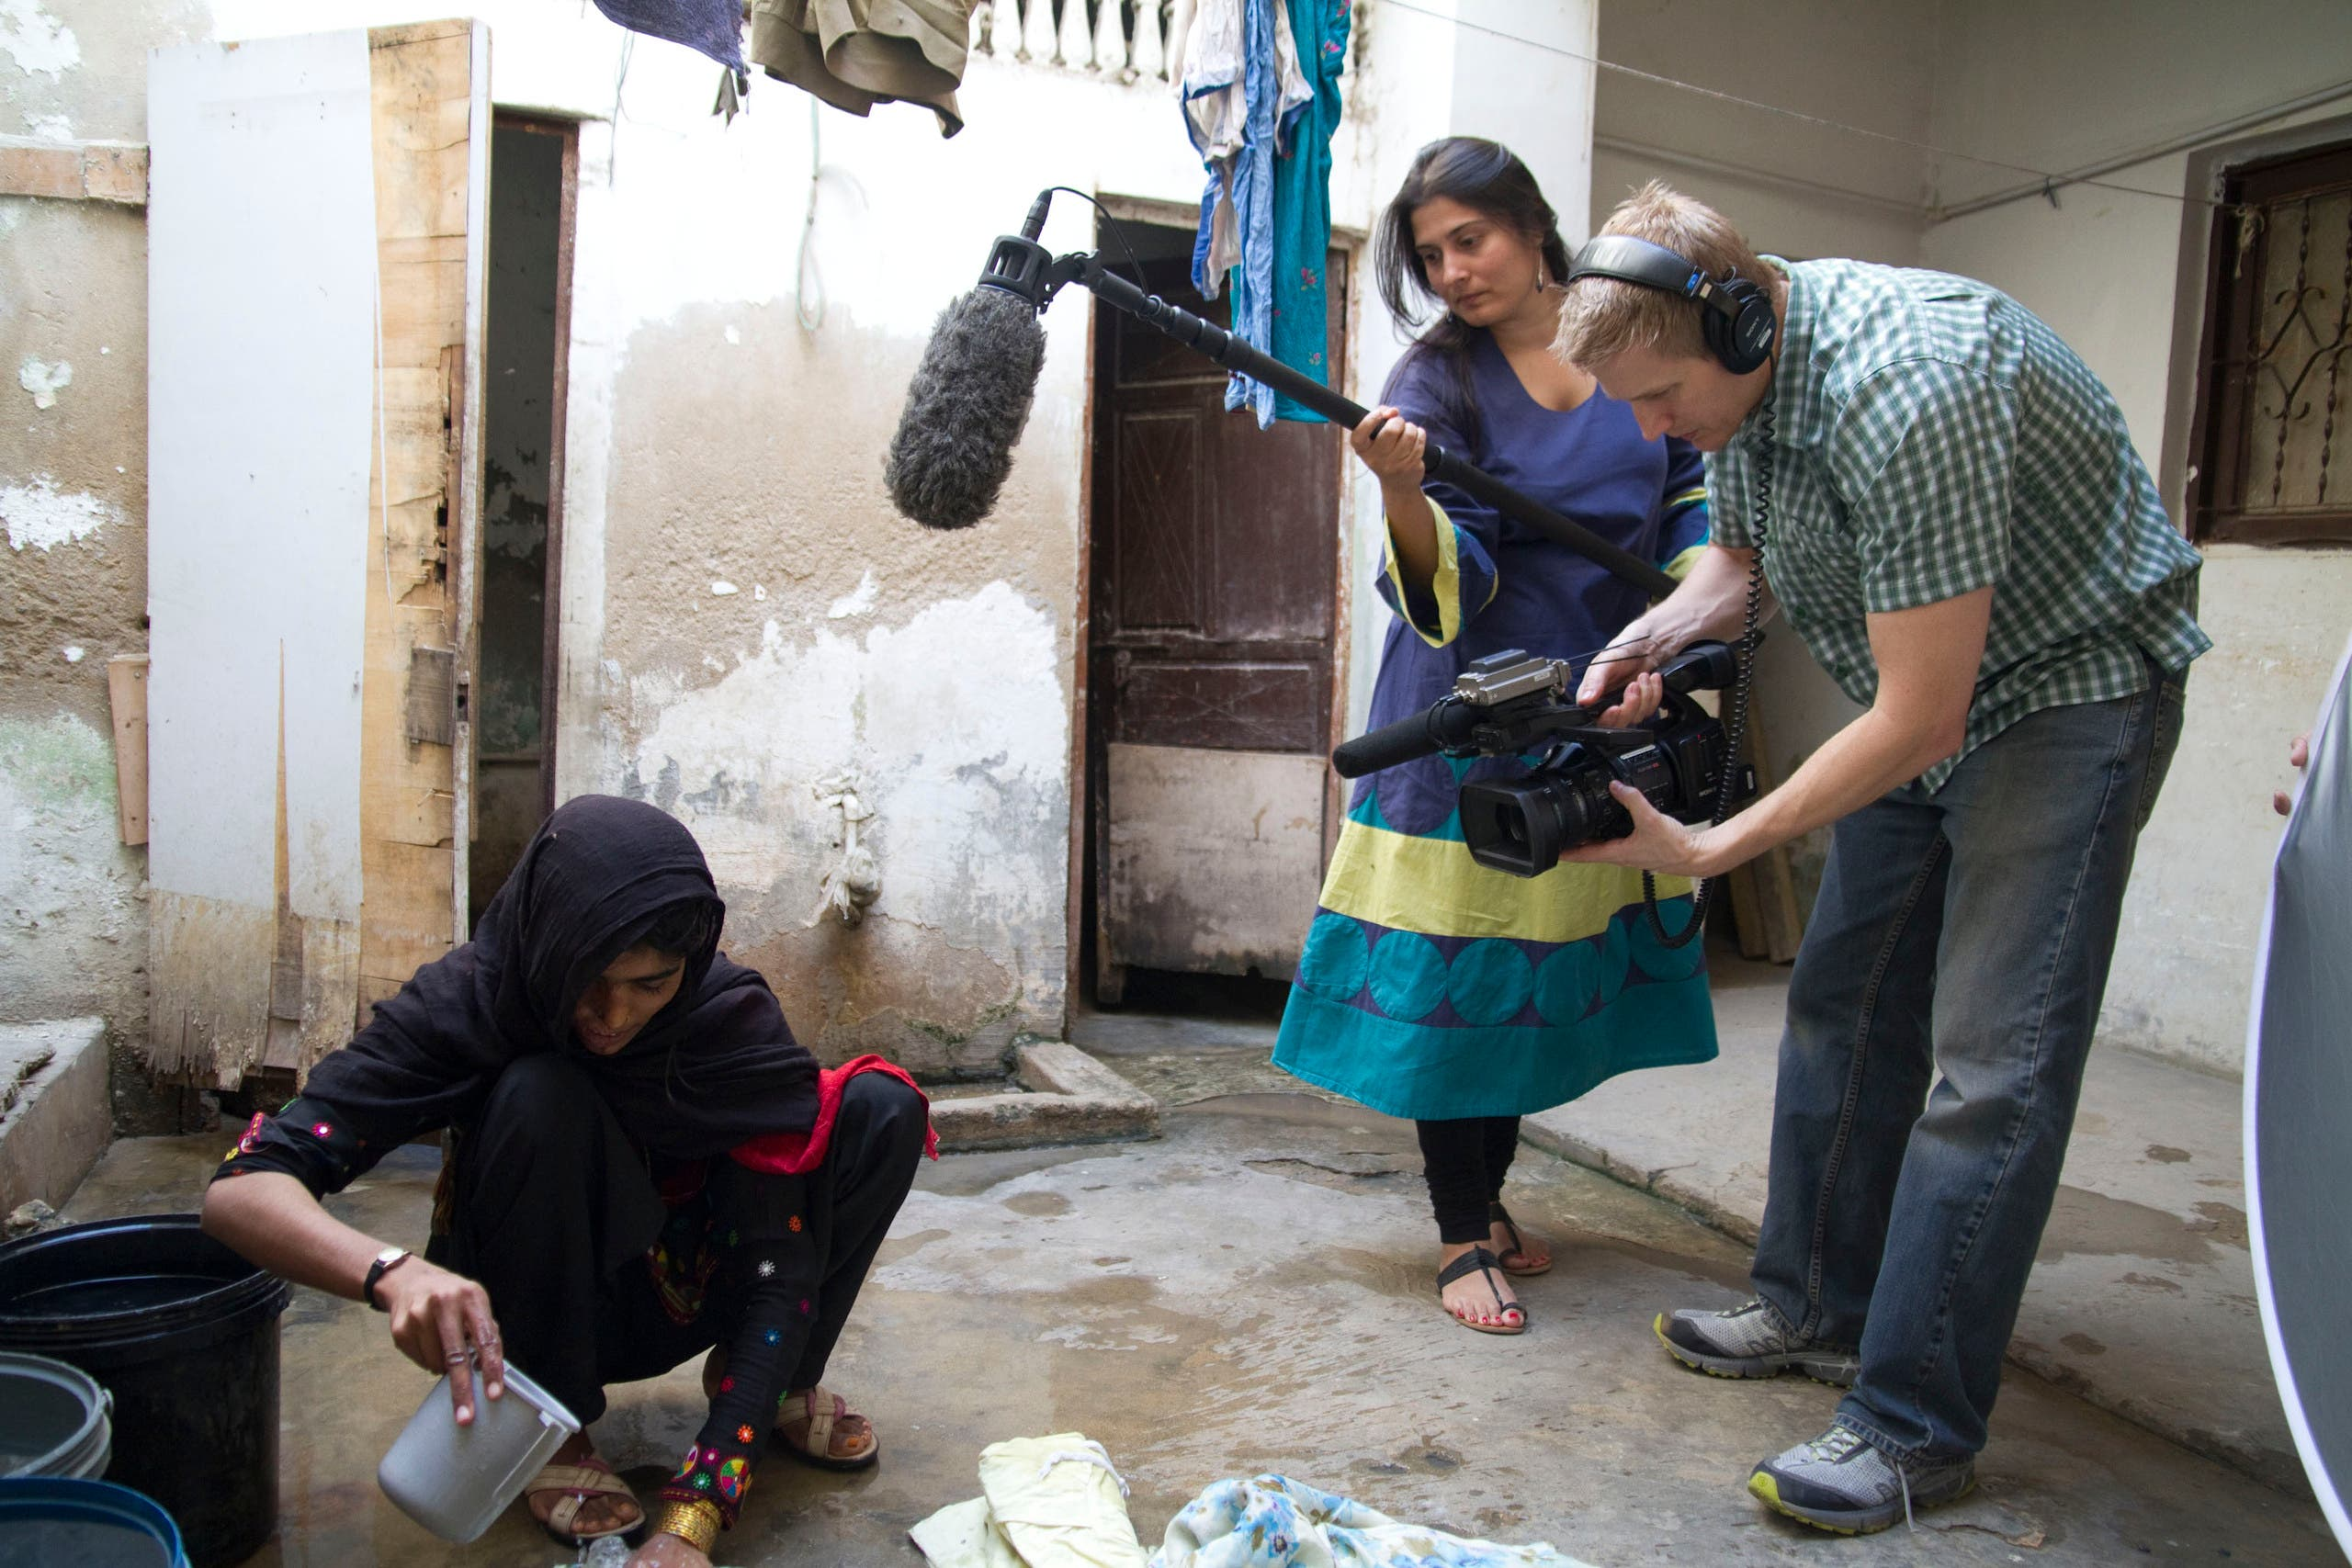 More than 1,000 women are killed in the name of 'honor' in Pakistan every year. (Photo courtesy: Sharmeen Obaid Films)